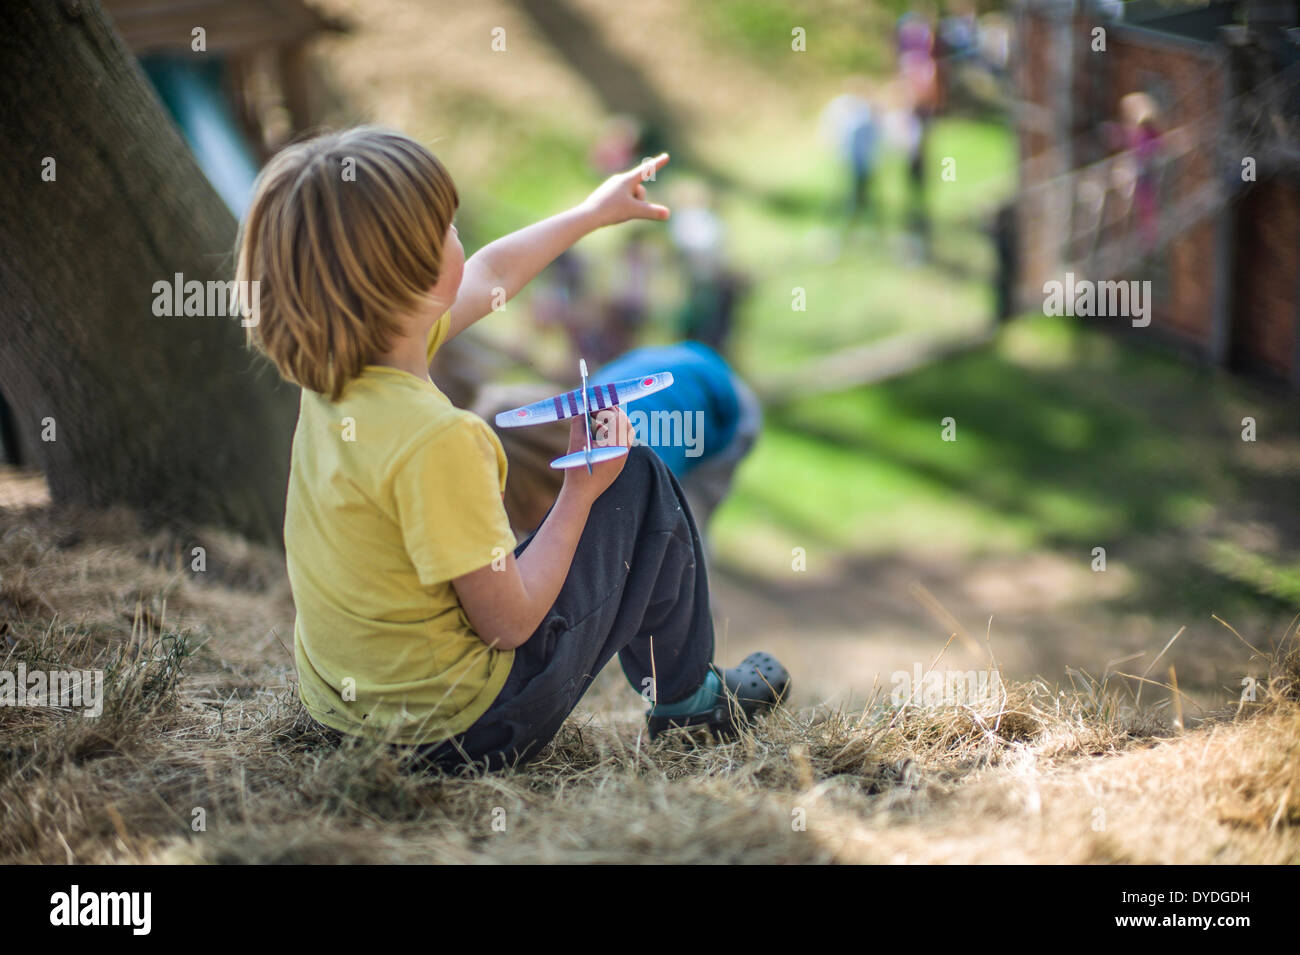 A young boy playing with a toy airplane at Hatfield House adventure playground. - Stock Image